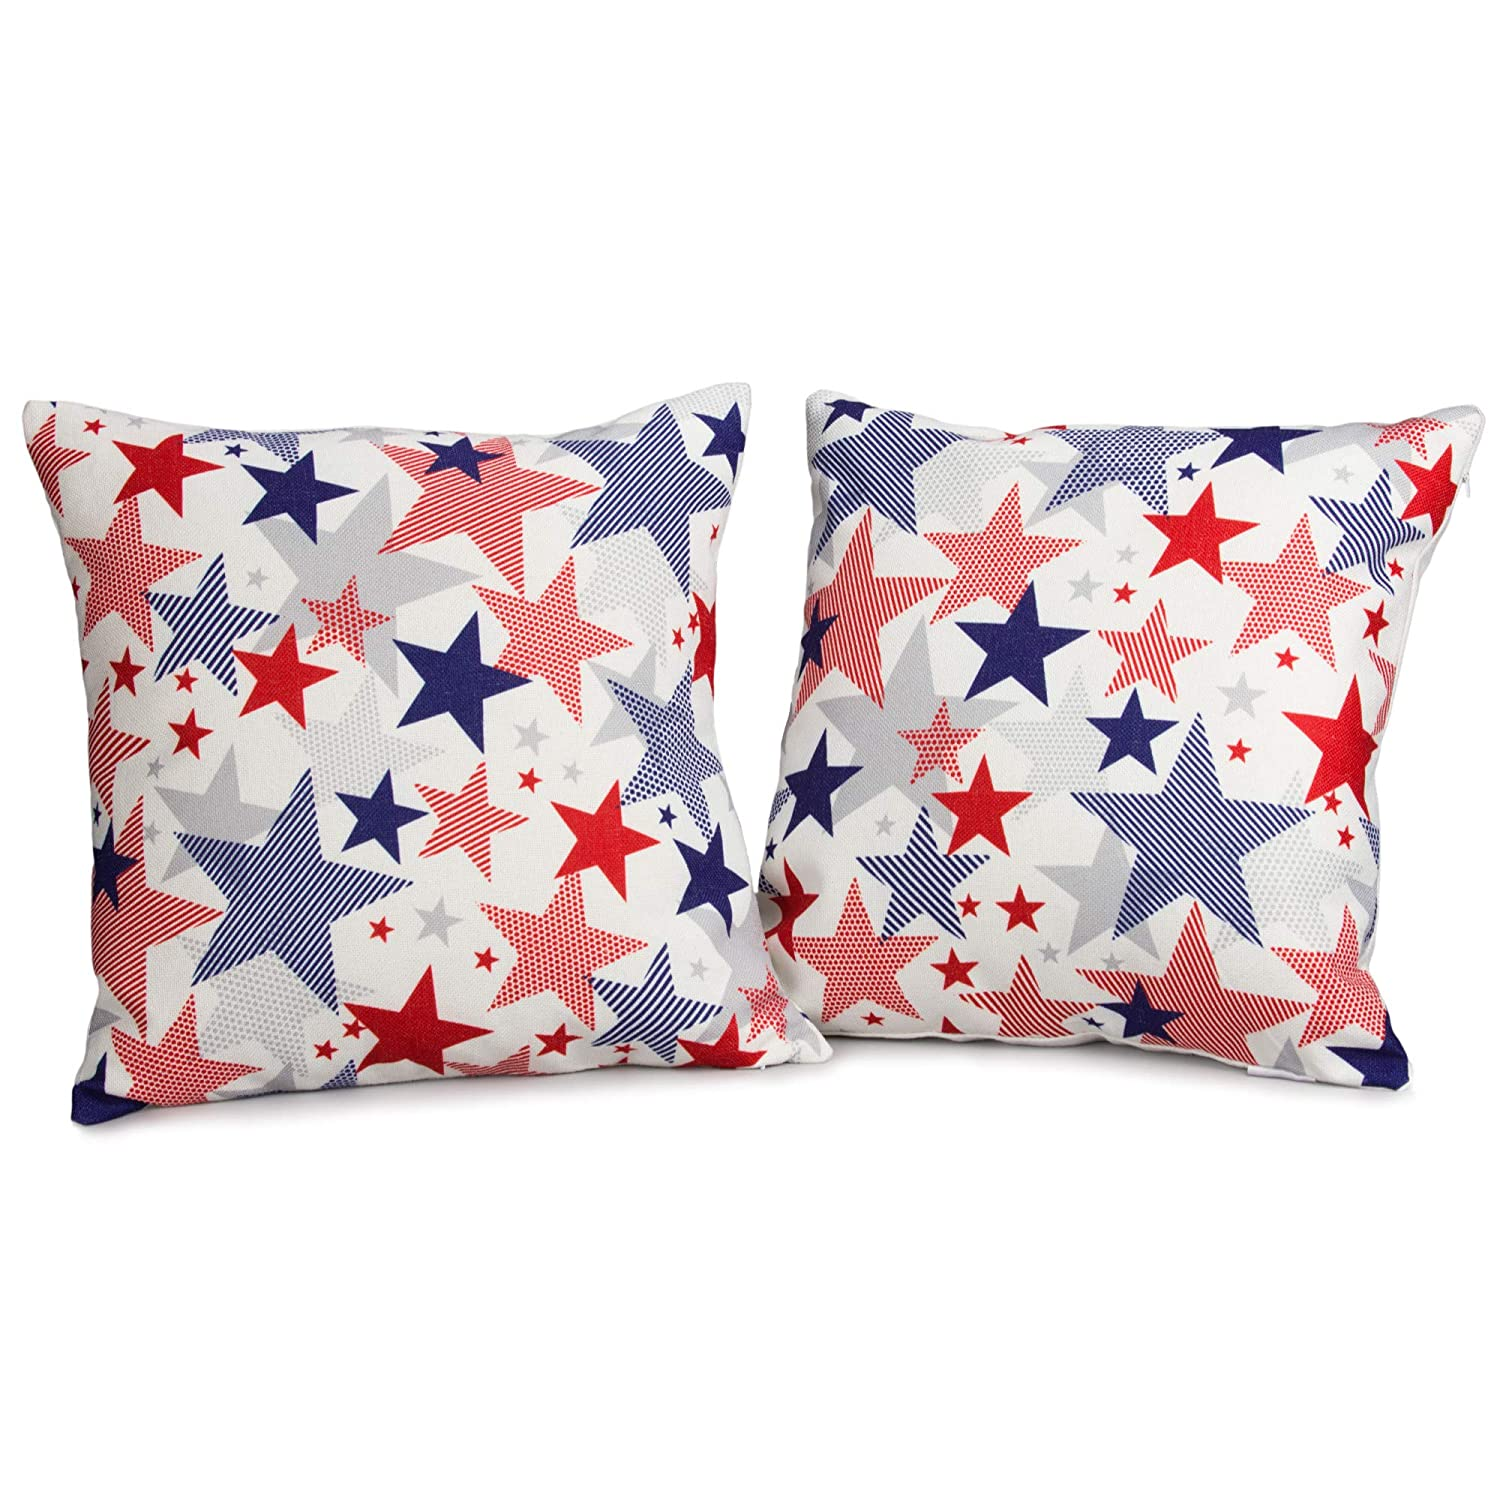 Image 3 of Holiday Pillow Covers, Set of 2